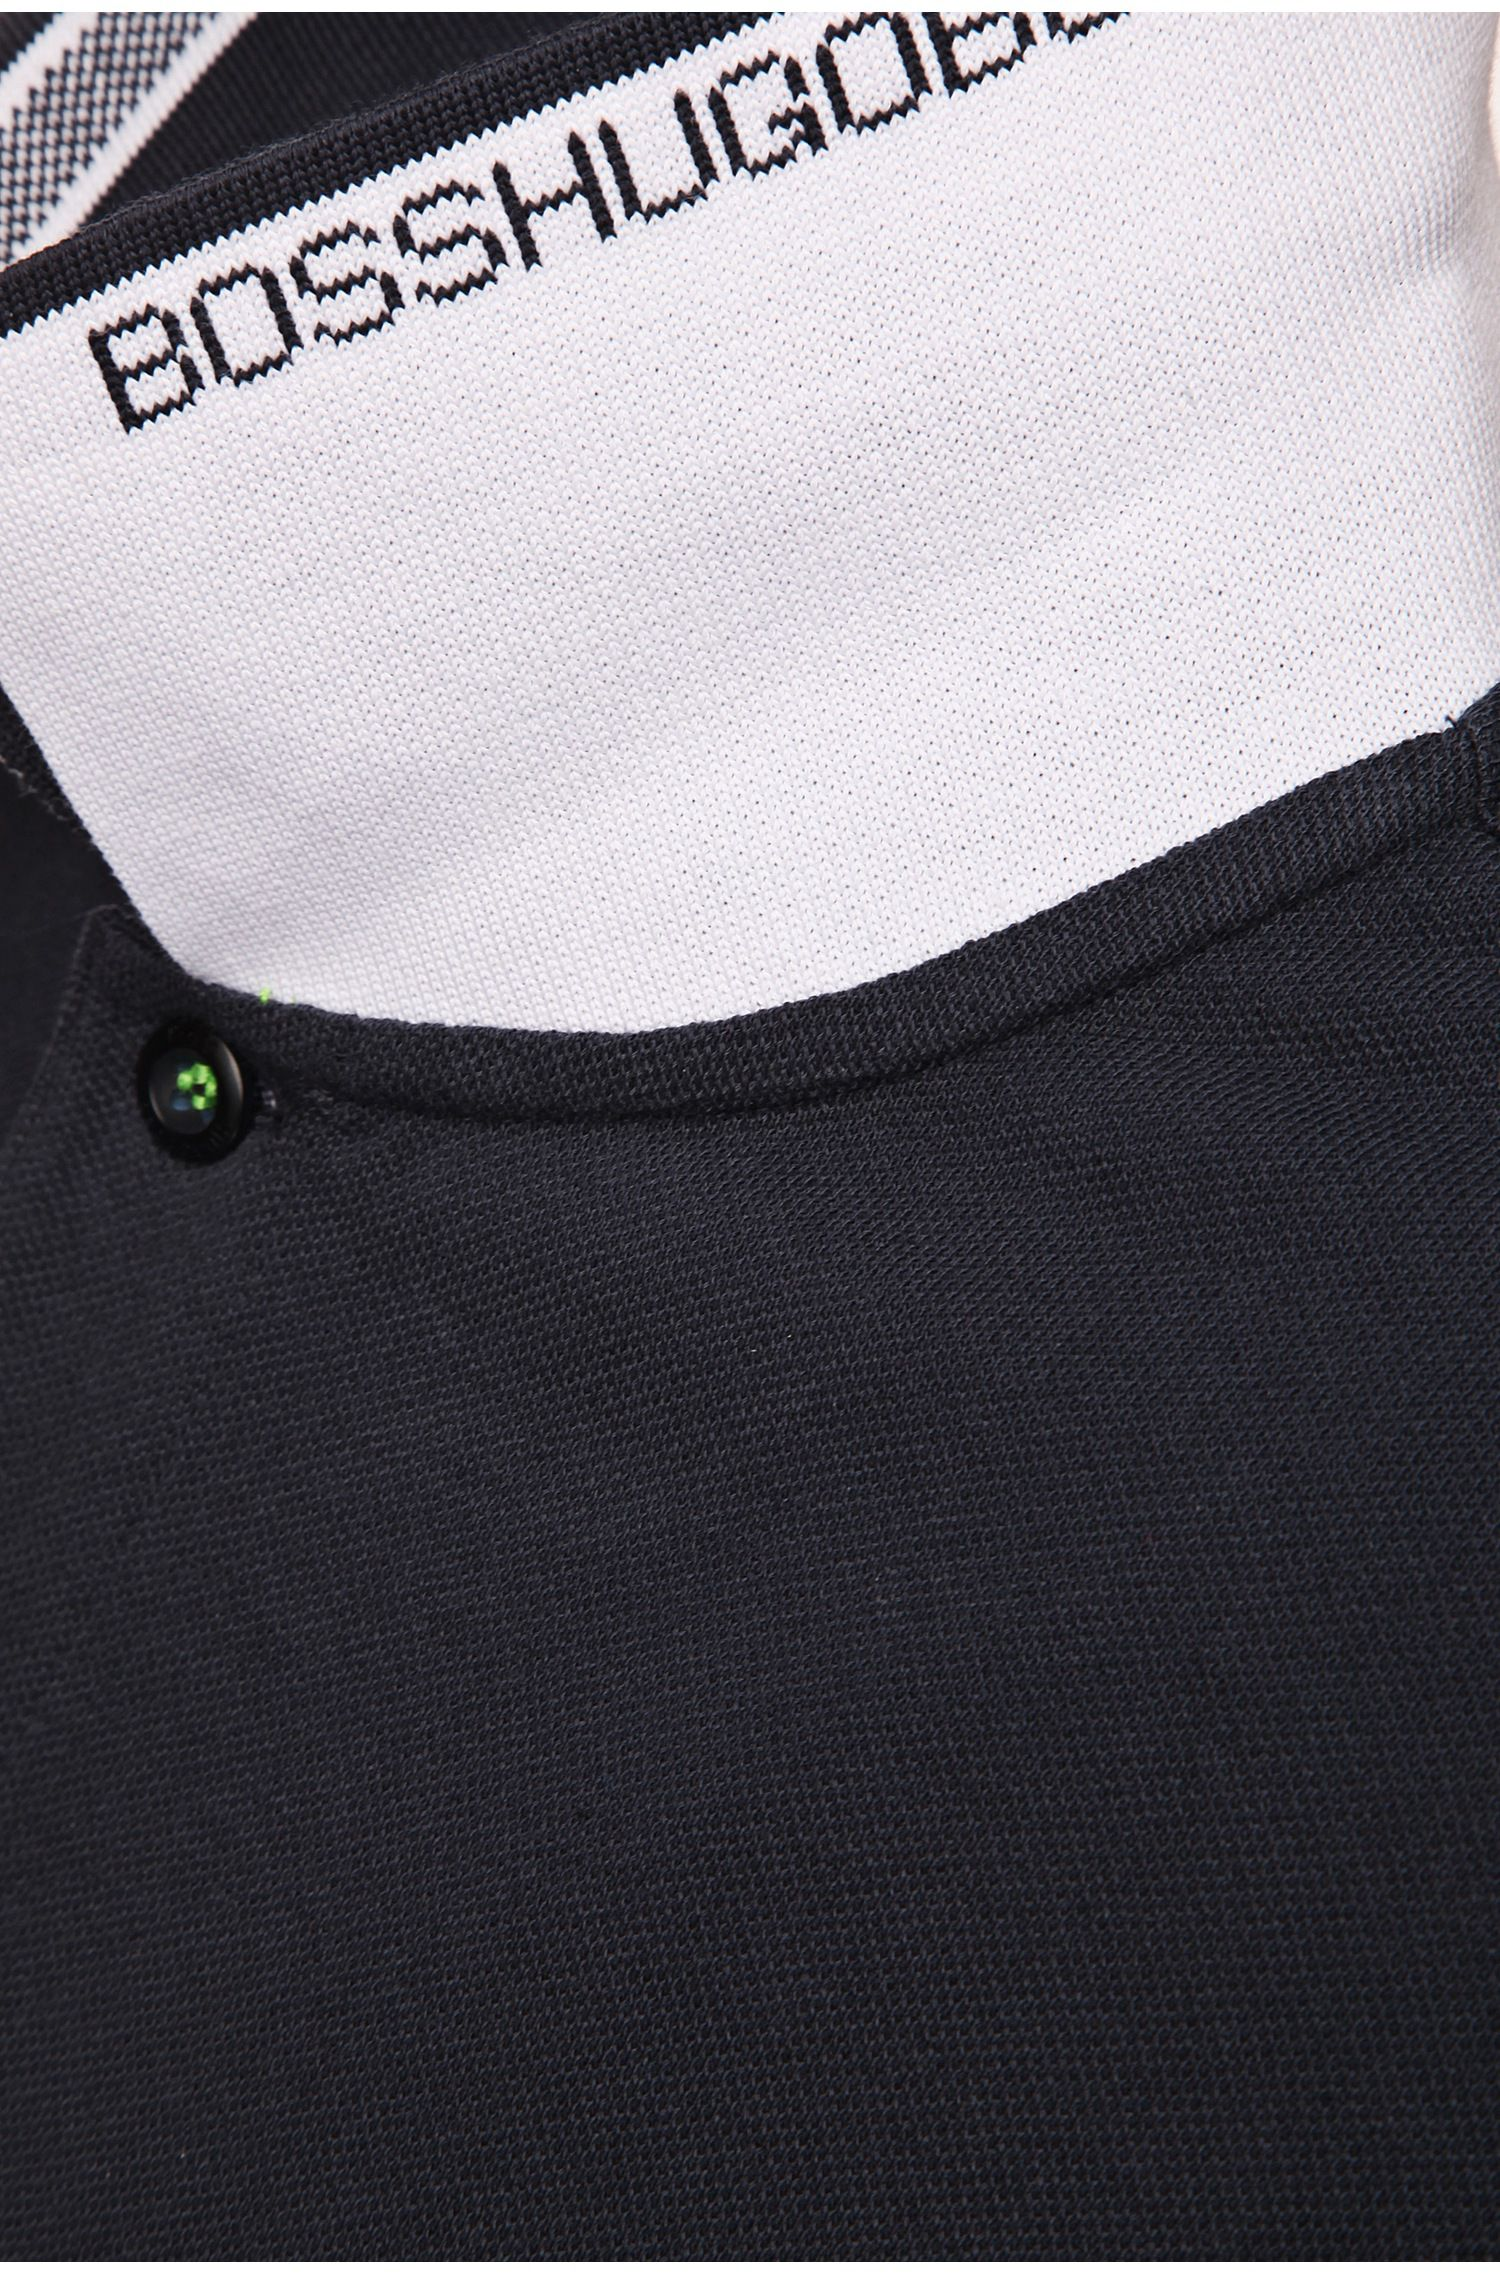 Polo regular fit con tapeta de 3 botones